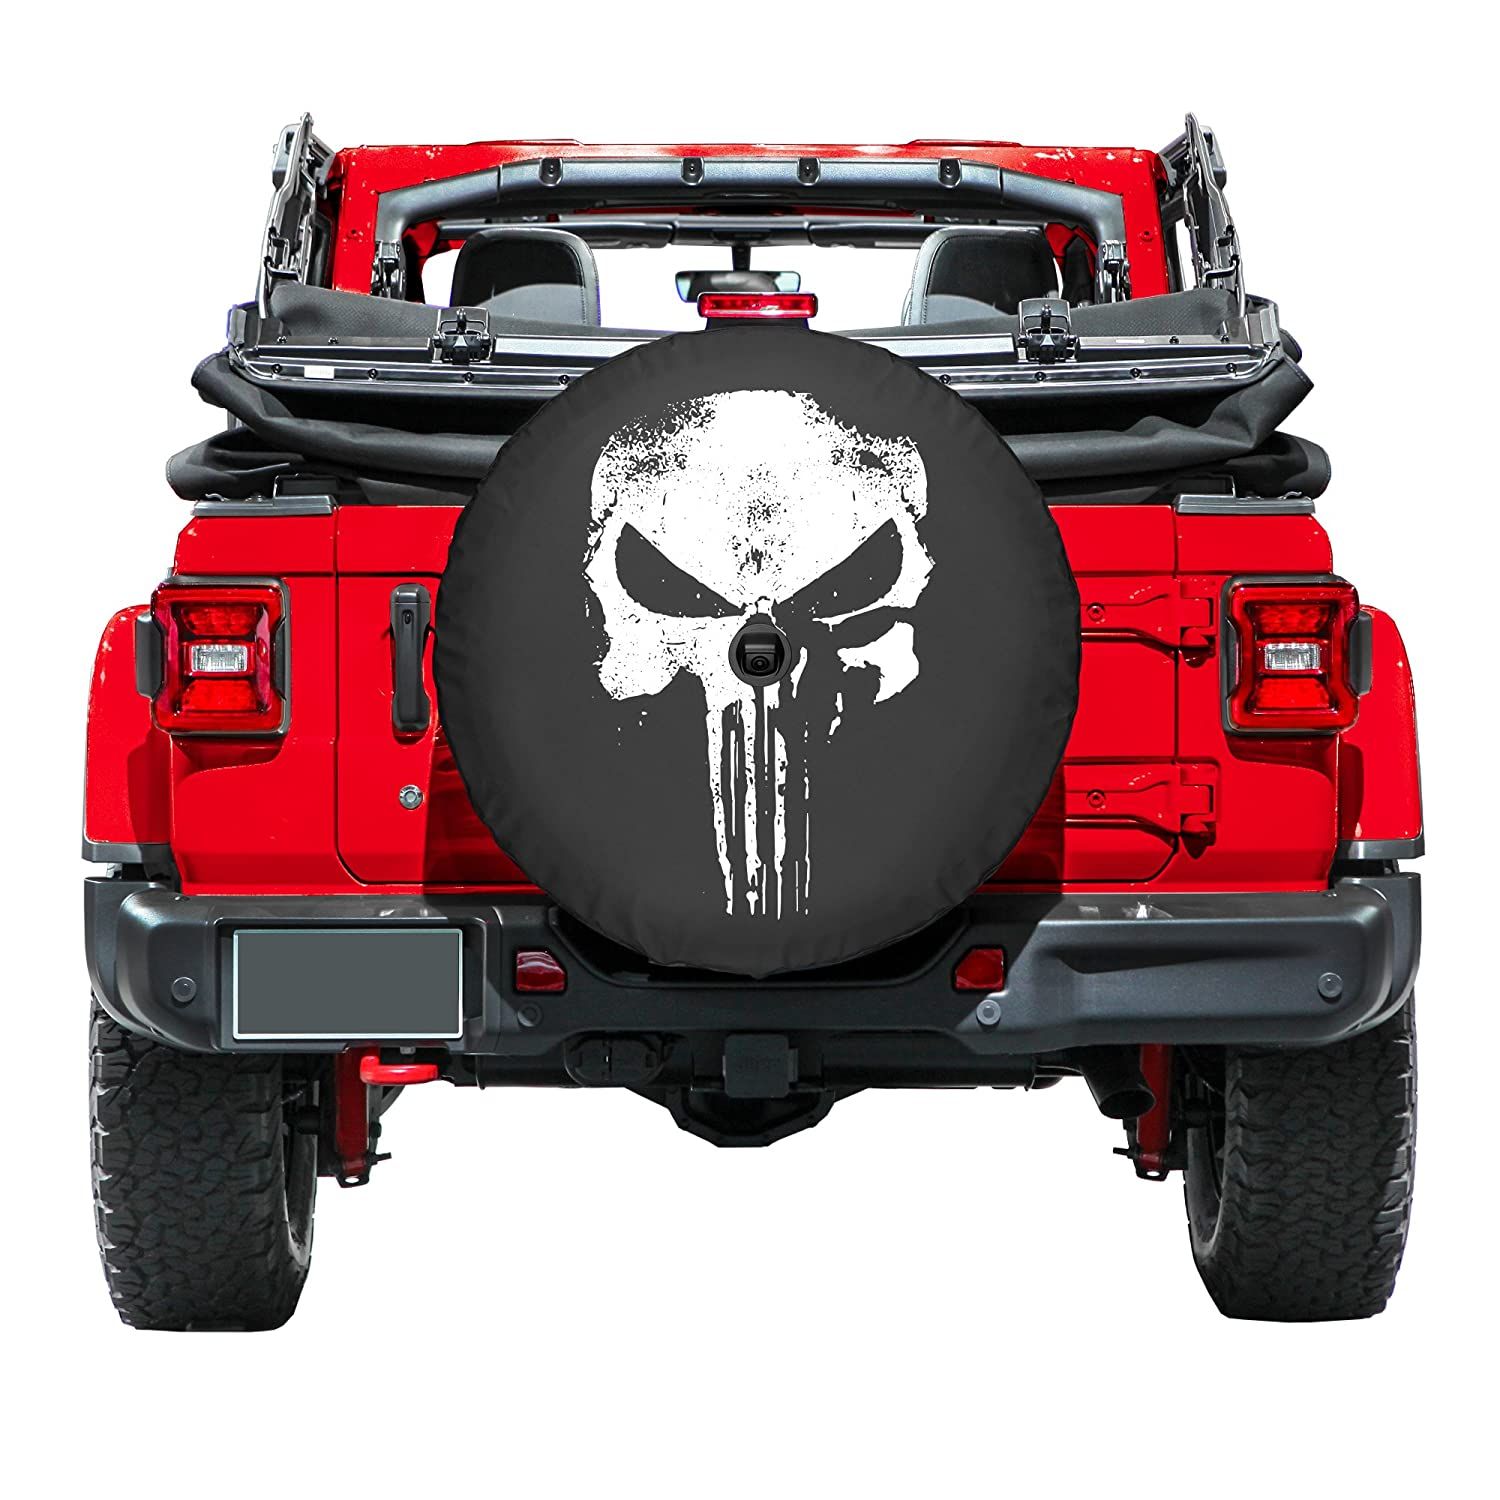 33 Soft JL Tire Cover for use with 2018-2019 Jeep Wrangler Rubicon JL with Back-up Camera - Distressed Punisher Skull Boomerang